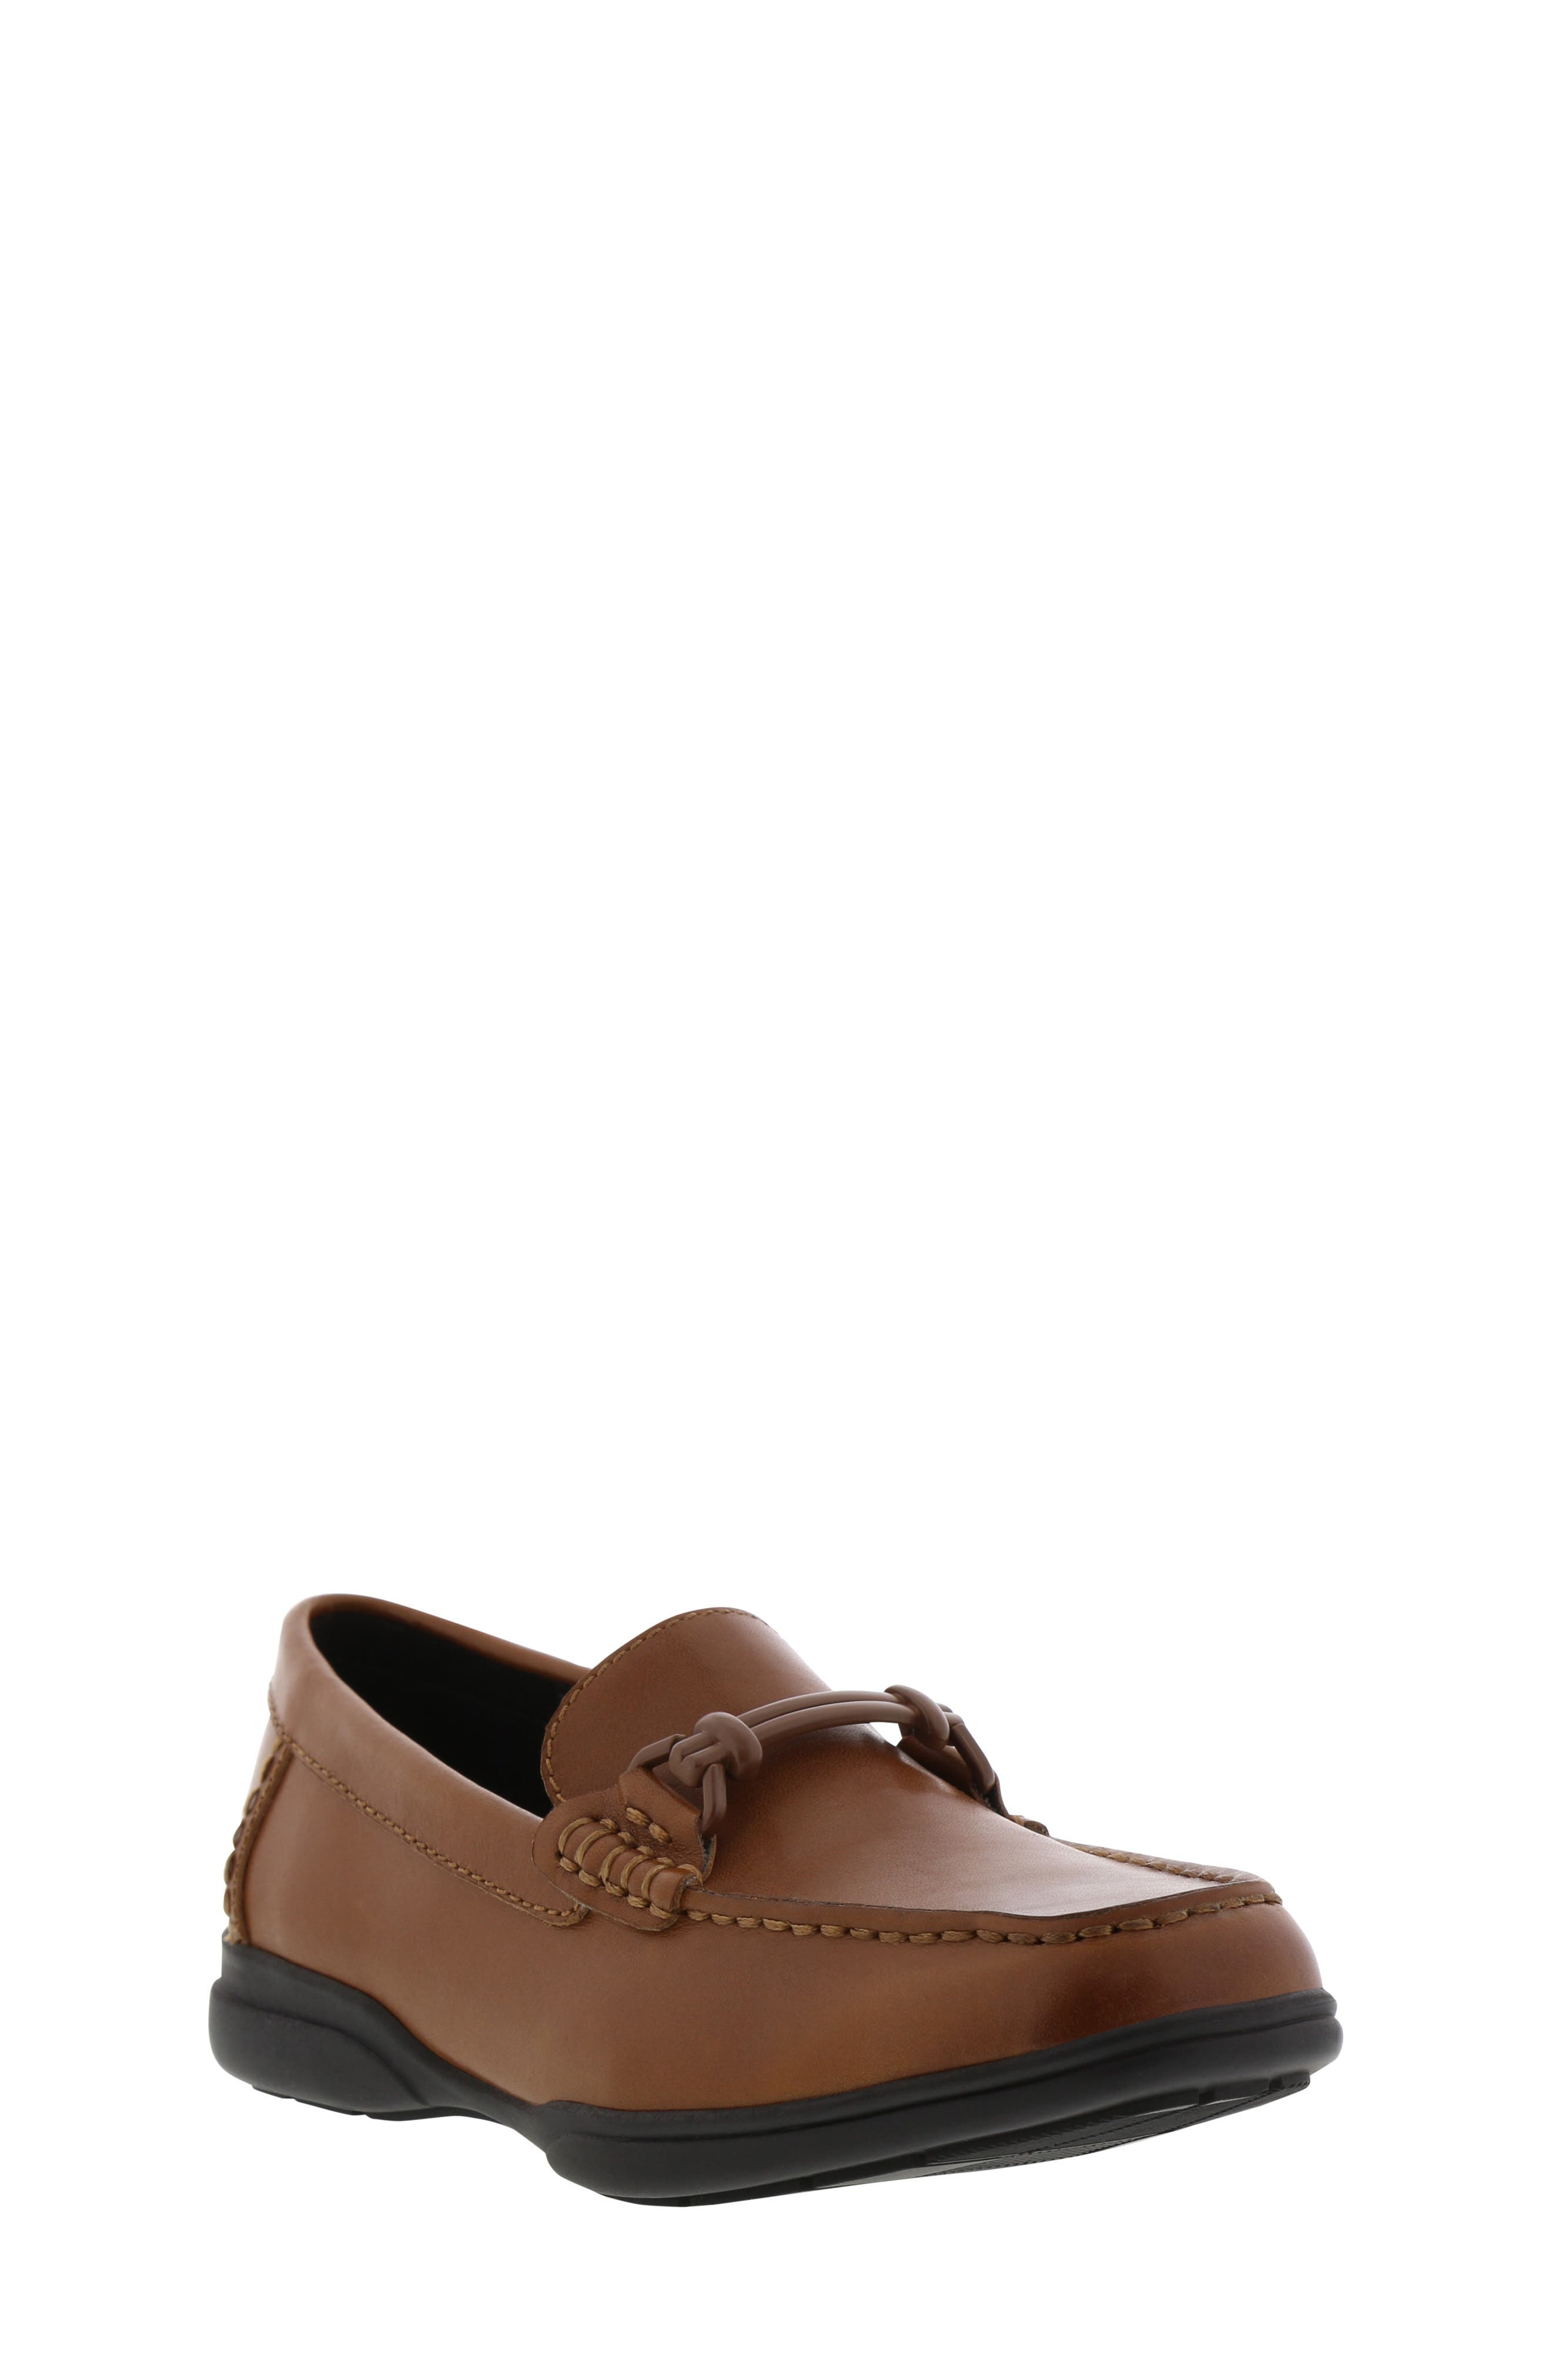 Joe Mason Driving Loafer,                             Main thumbnail 1, color,                             BURNT WHISKEY